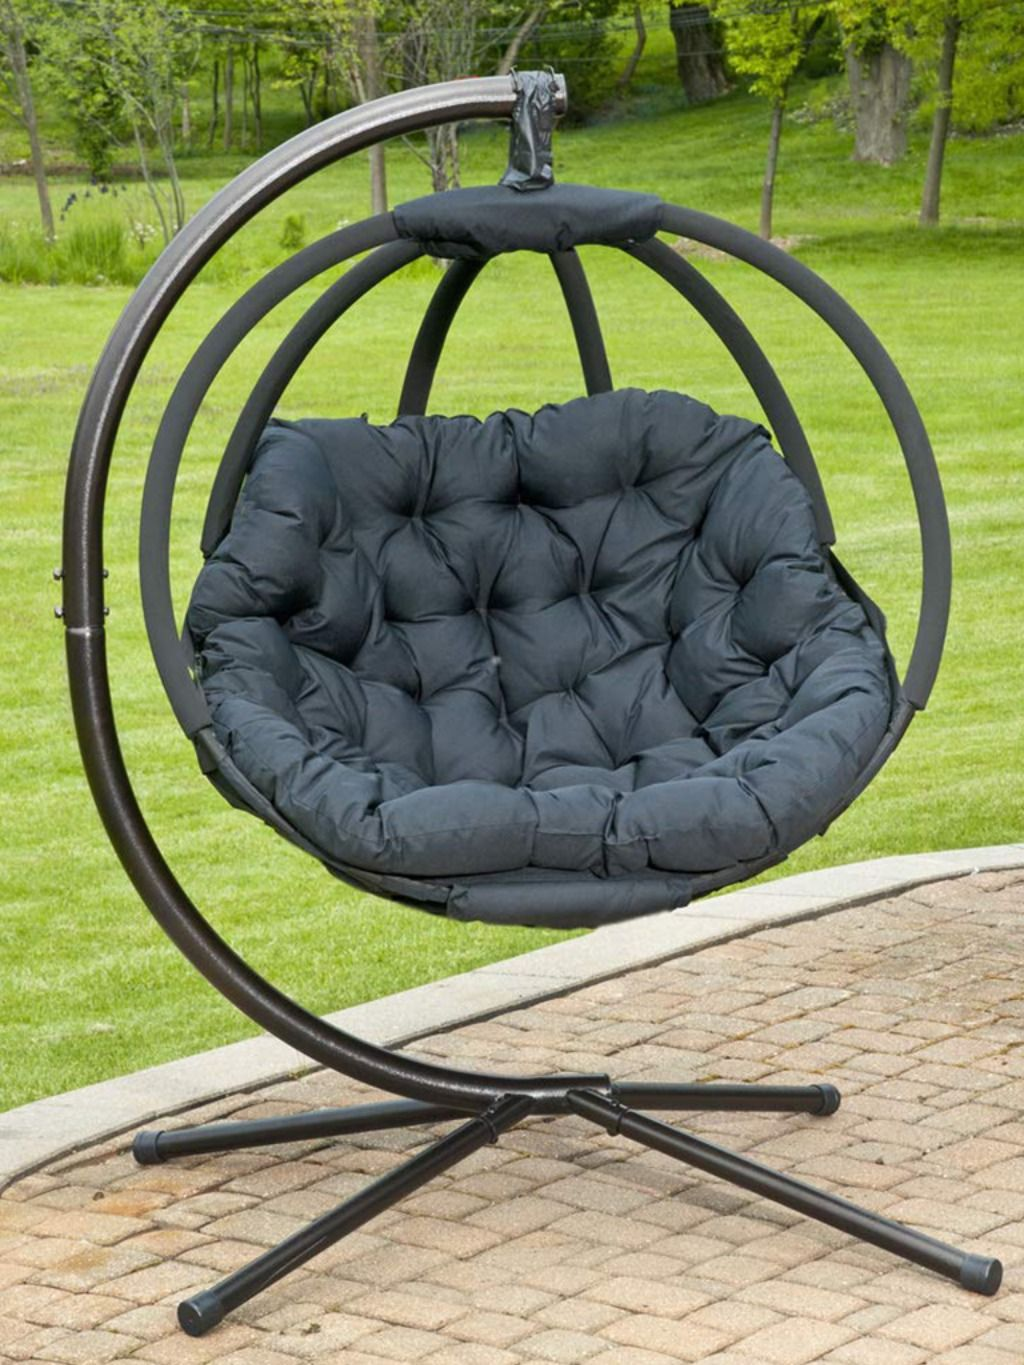 Hanging Ball Chair With Stand Flower House In 2020 Hanging Chair Diy Hanging Chair Ball Chair